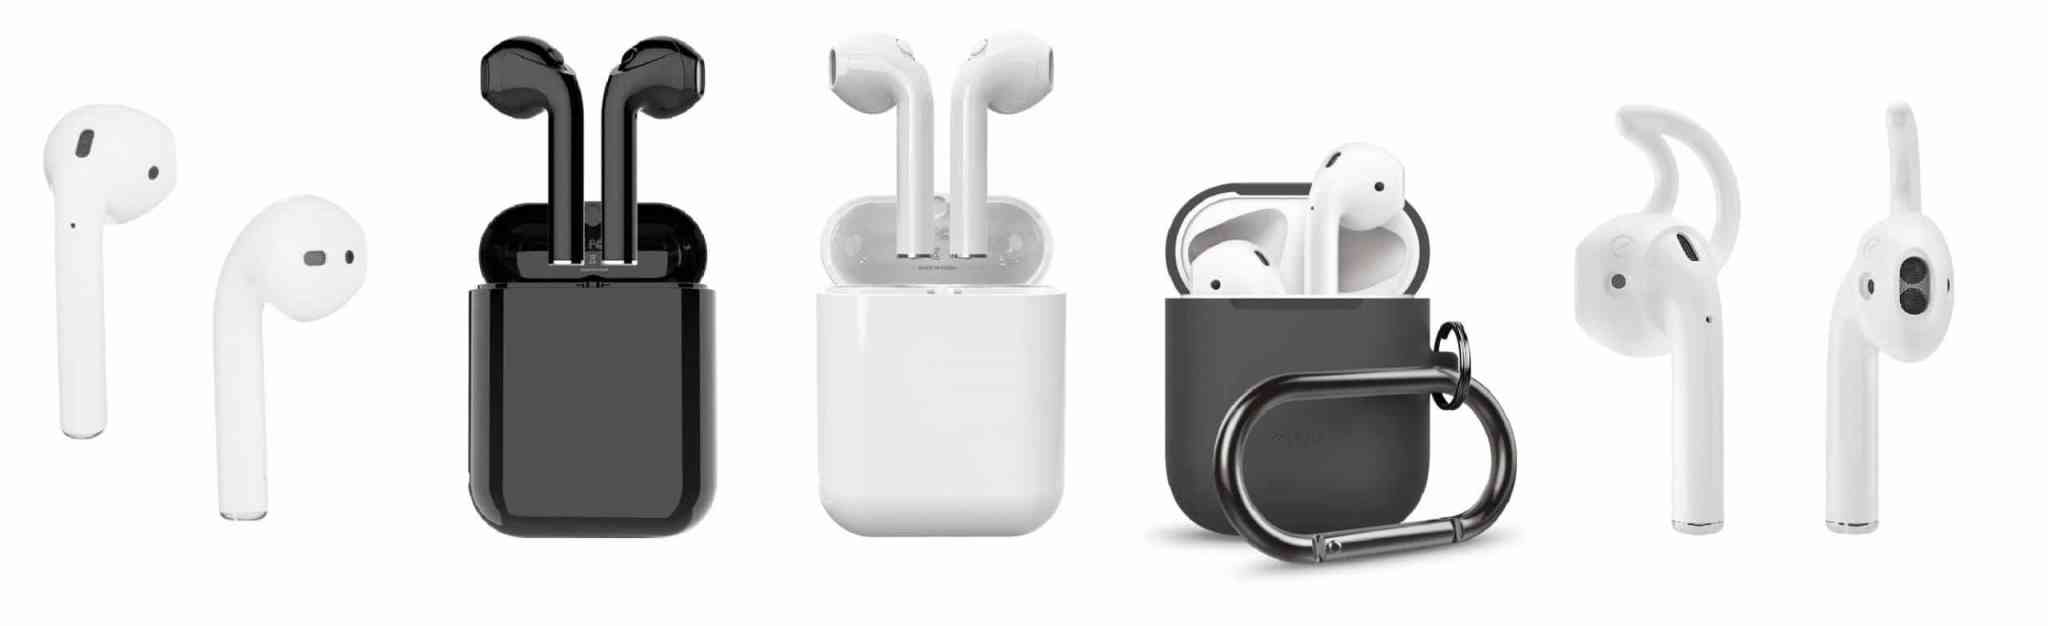 11 Best Airpods and Earpods